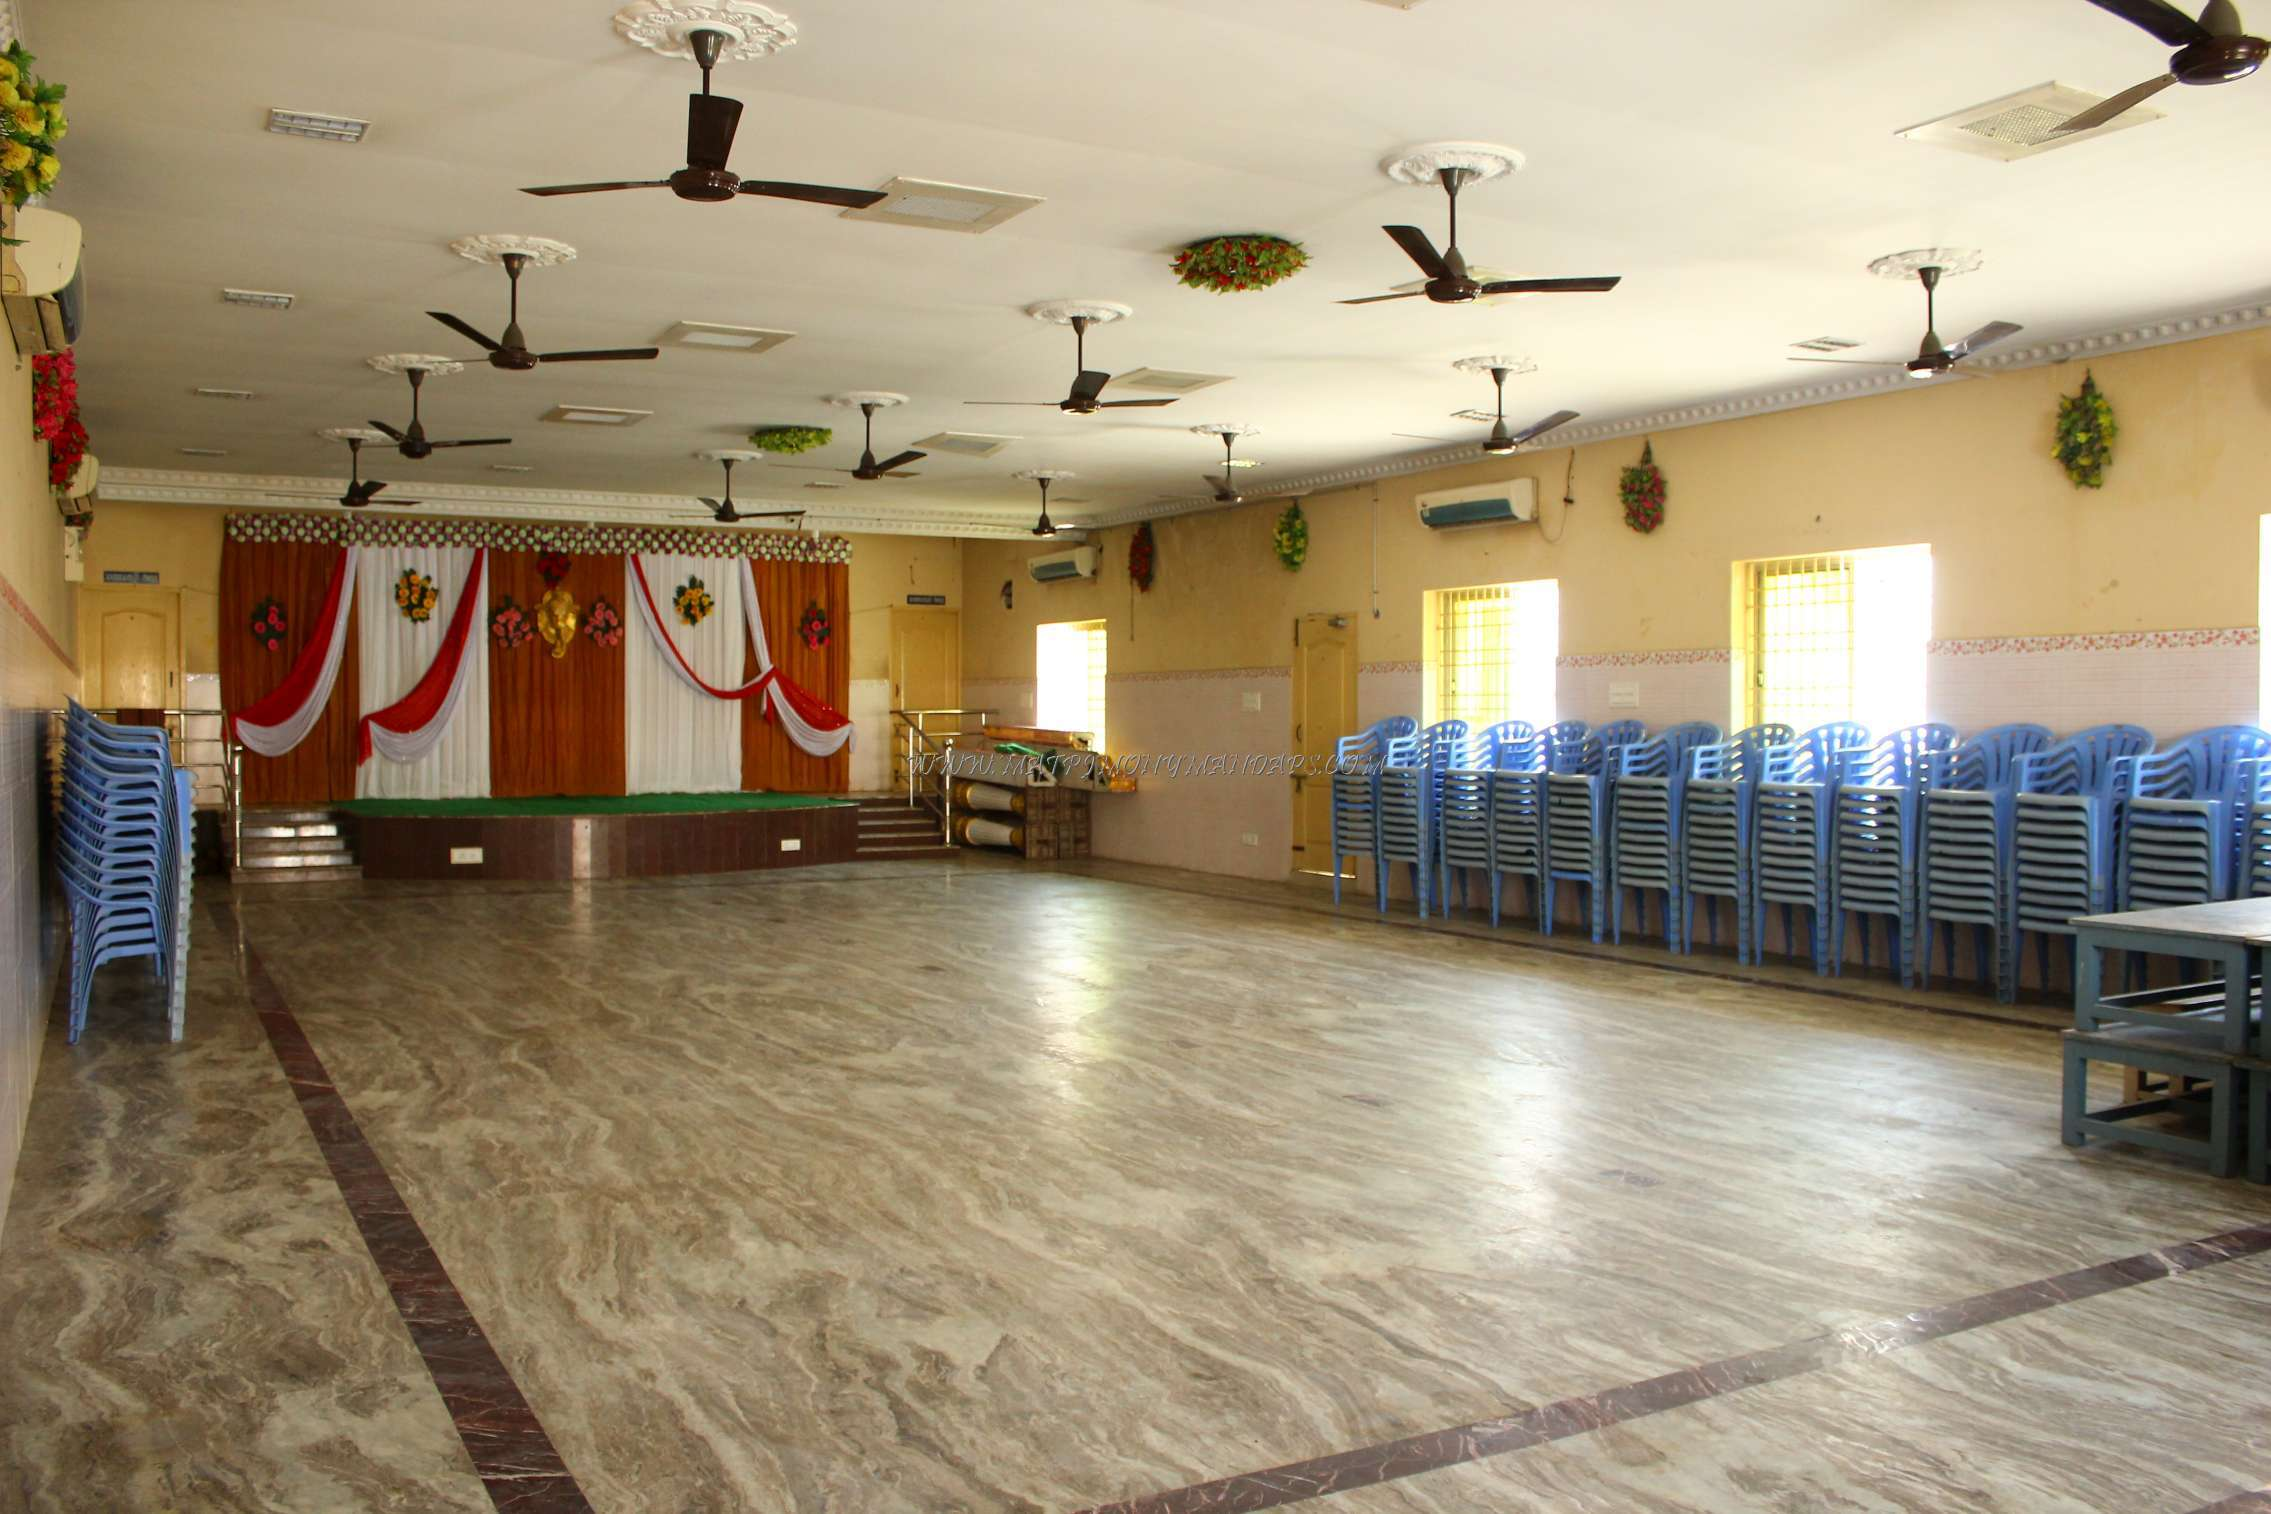 Find the availability of the CR Thirumana Mandapam (A/C) in Pallikaranai, Chennai and avail special offers